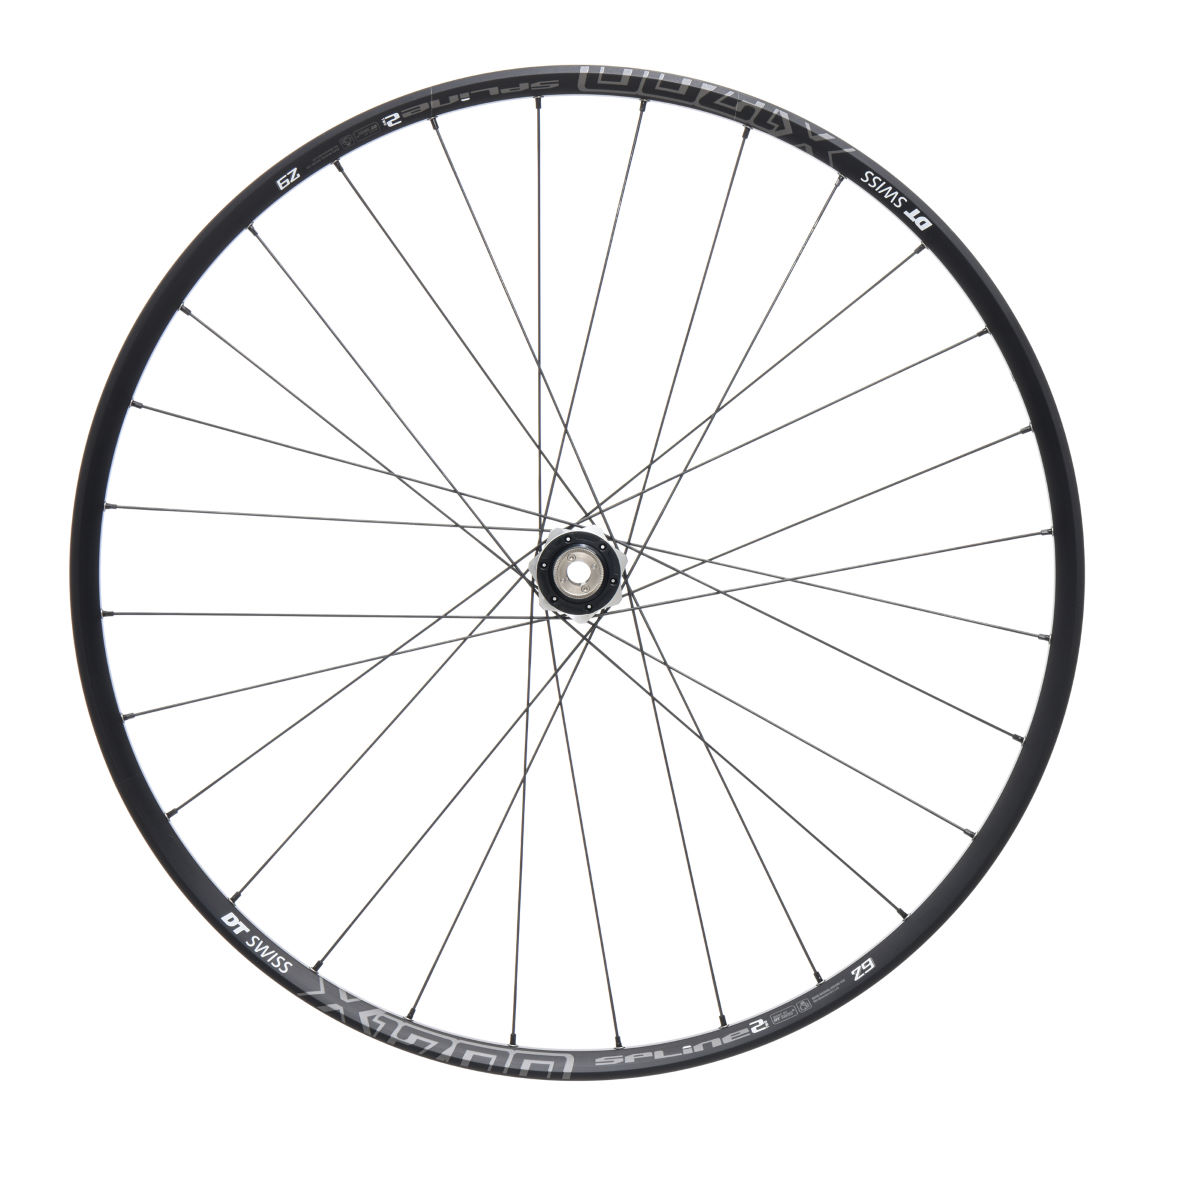 Roue avant VTT DT Swiss X 1700 Spline Two Boost - 29 - 15x110mm (25mm)